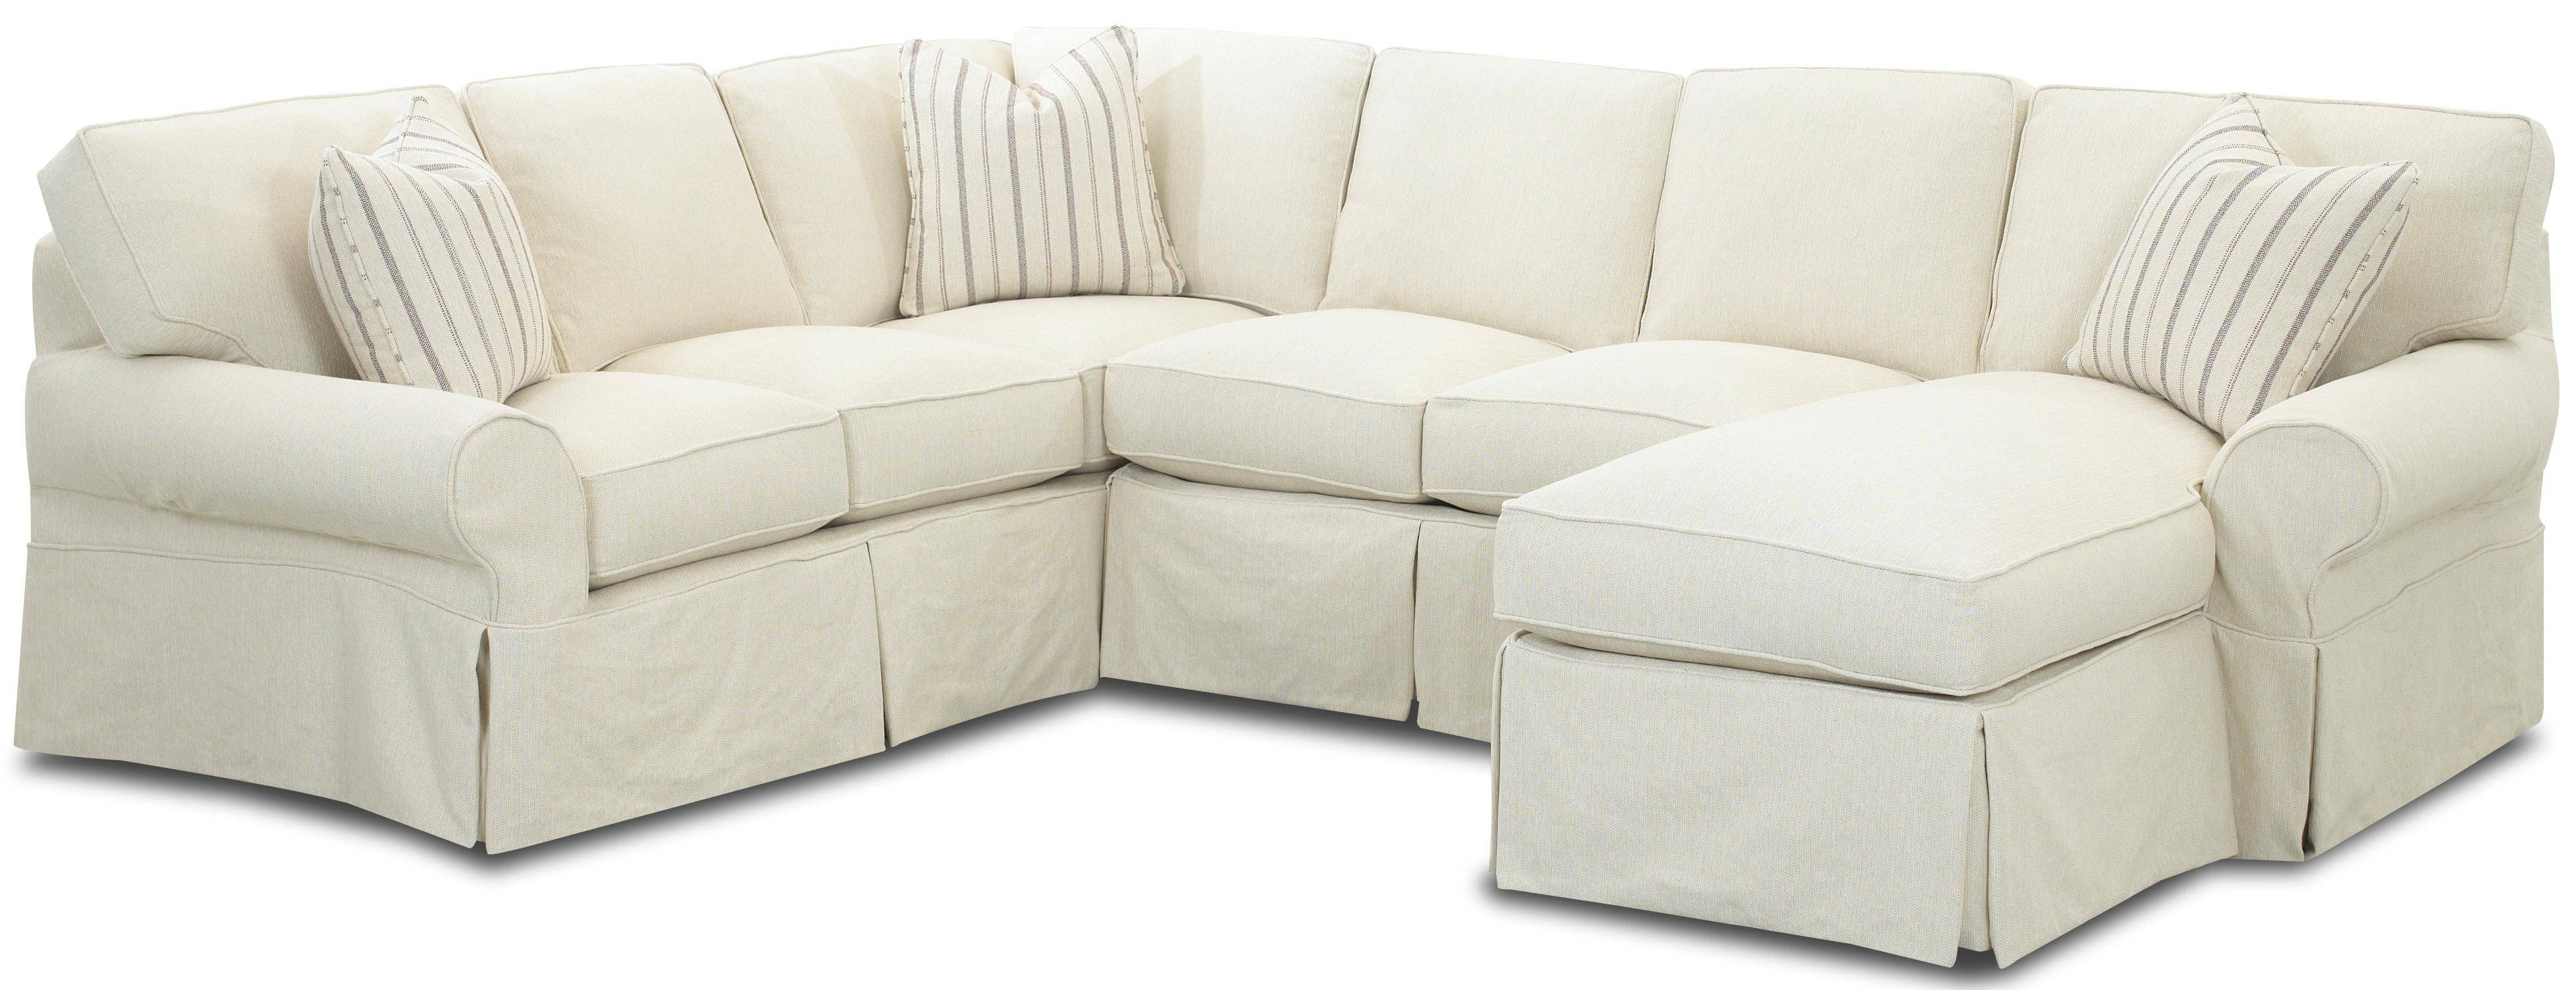 Furniture: Luxury Curved Sectional Sofa For Living Room Furniture within Striped Sofas and Chairs (Image 19 of 30)